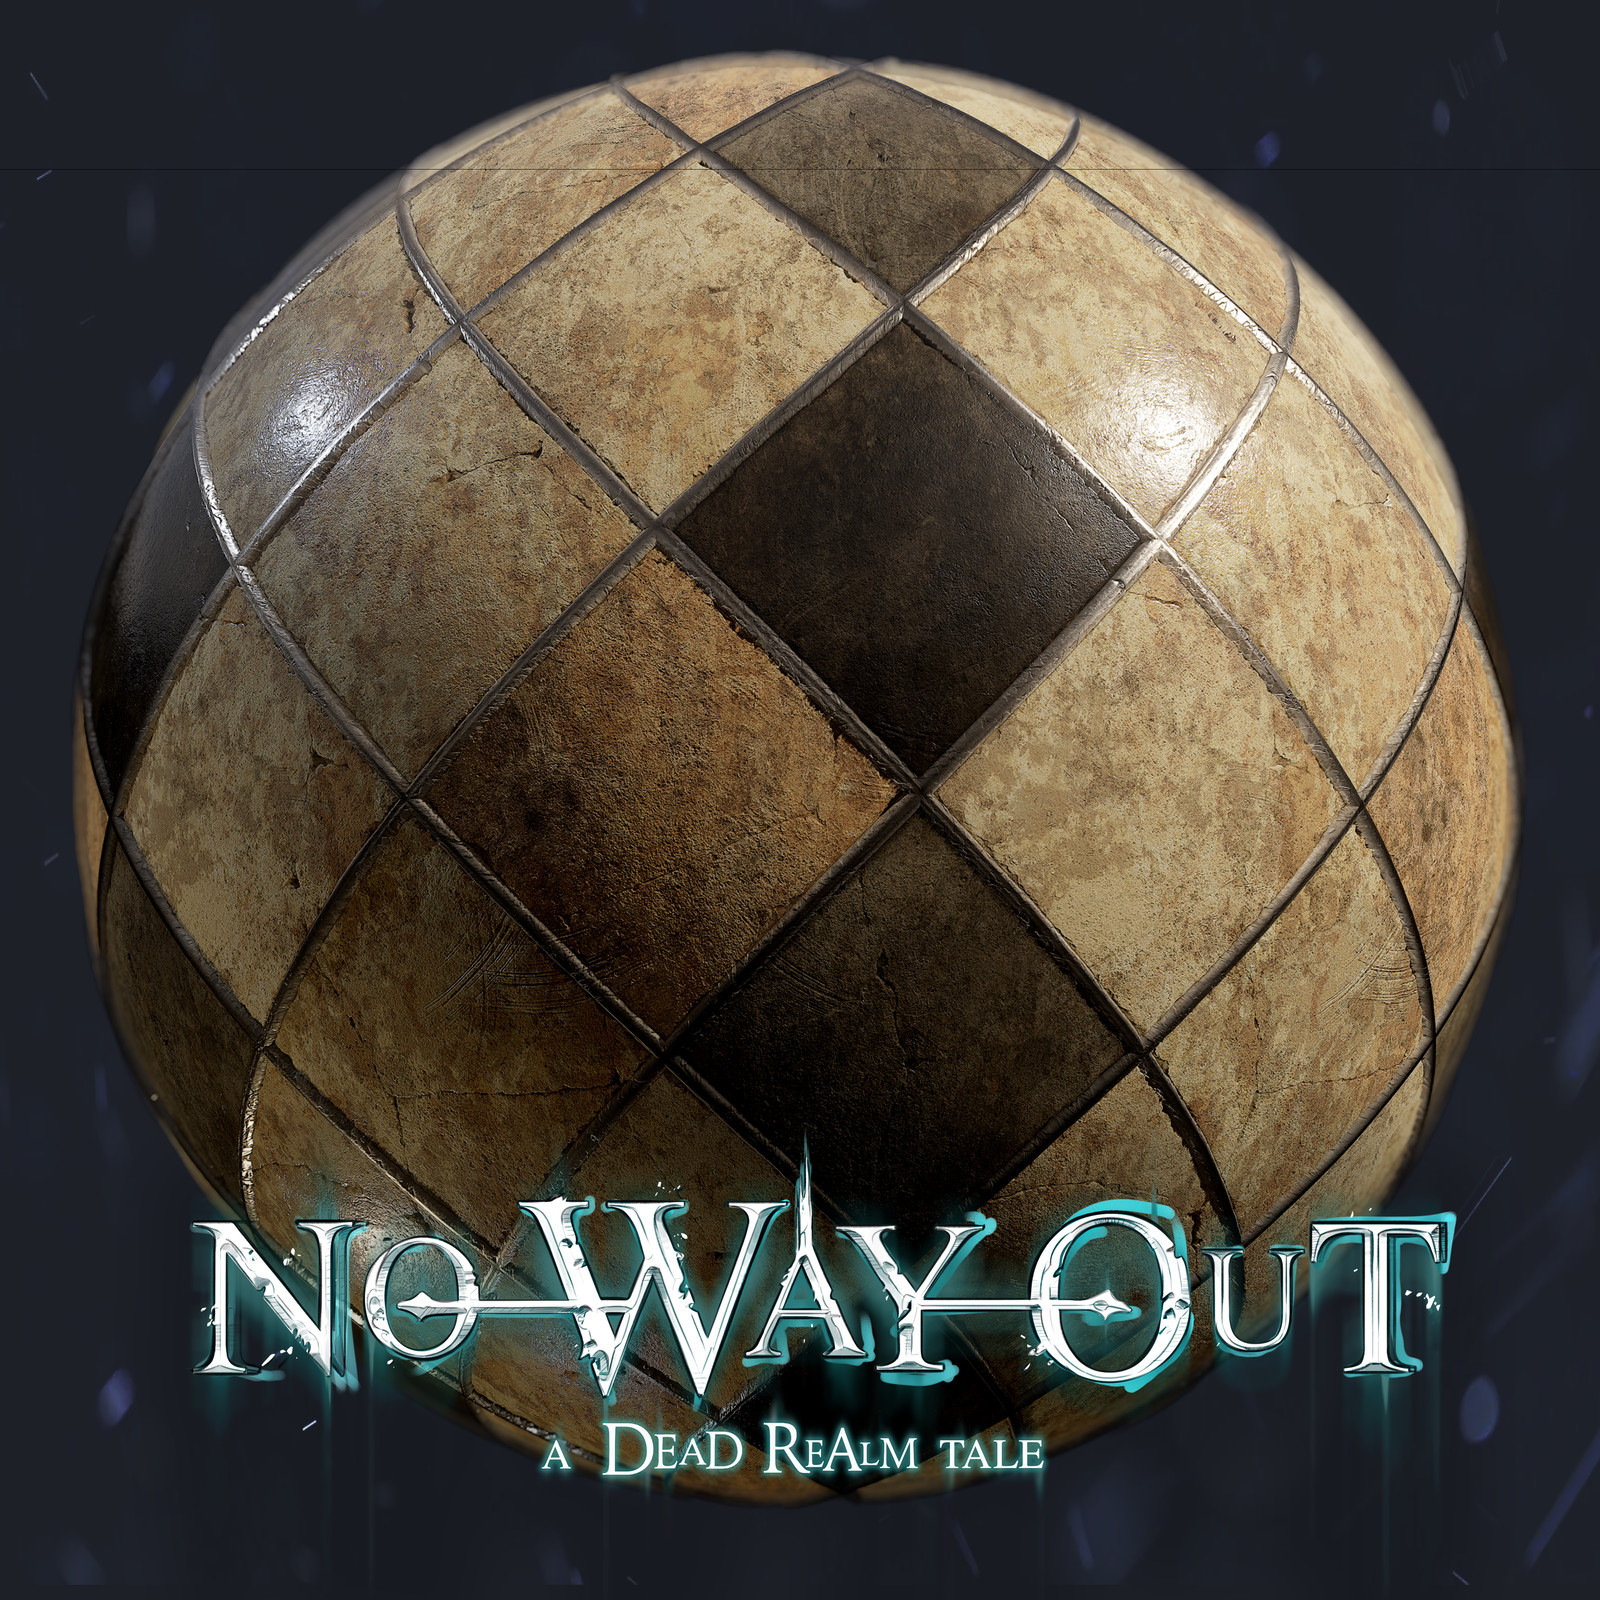 No Way Out - A Dead Realm Tale - Materials - Marble Floor Dead 02